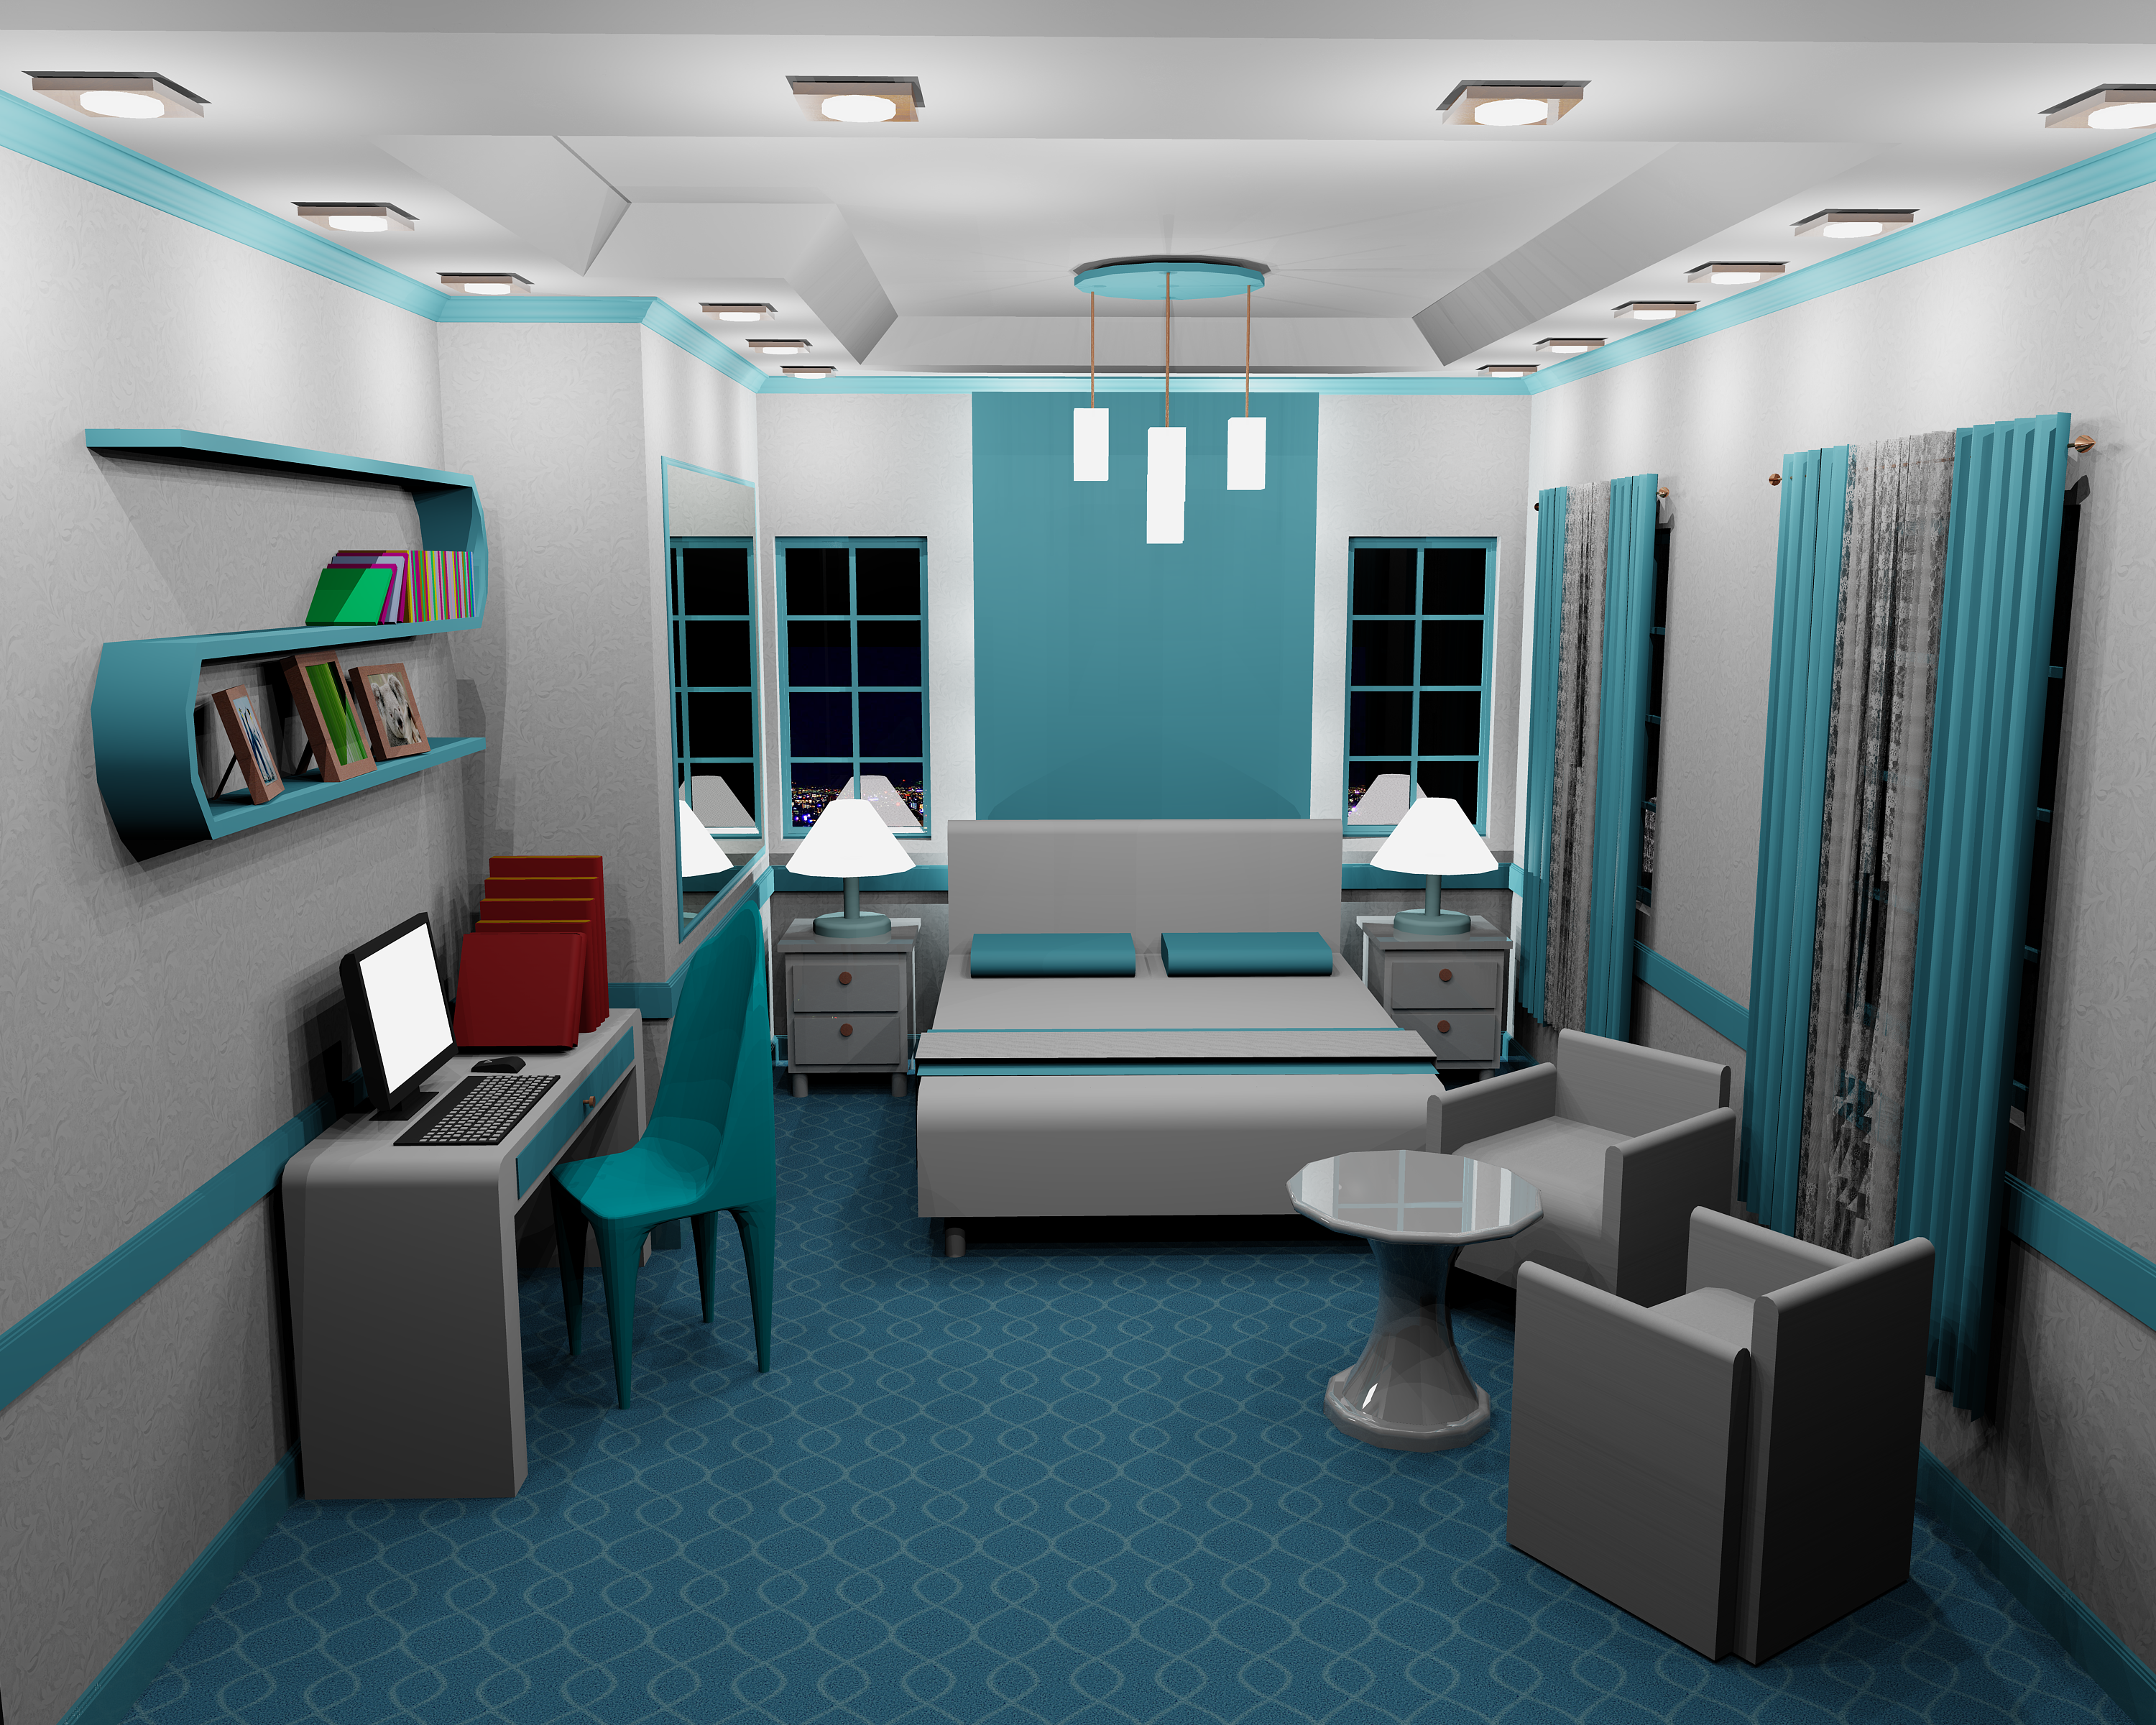 3d interior design using autocad by iamhulyeta on deviantart 3d interior design